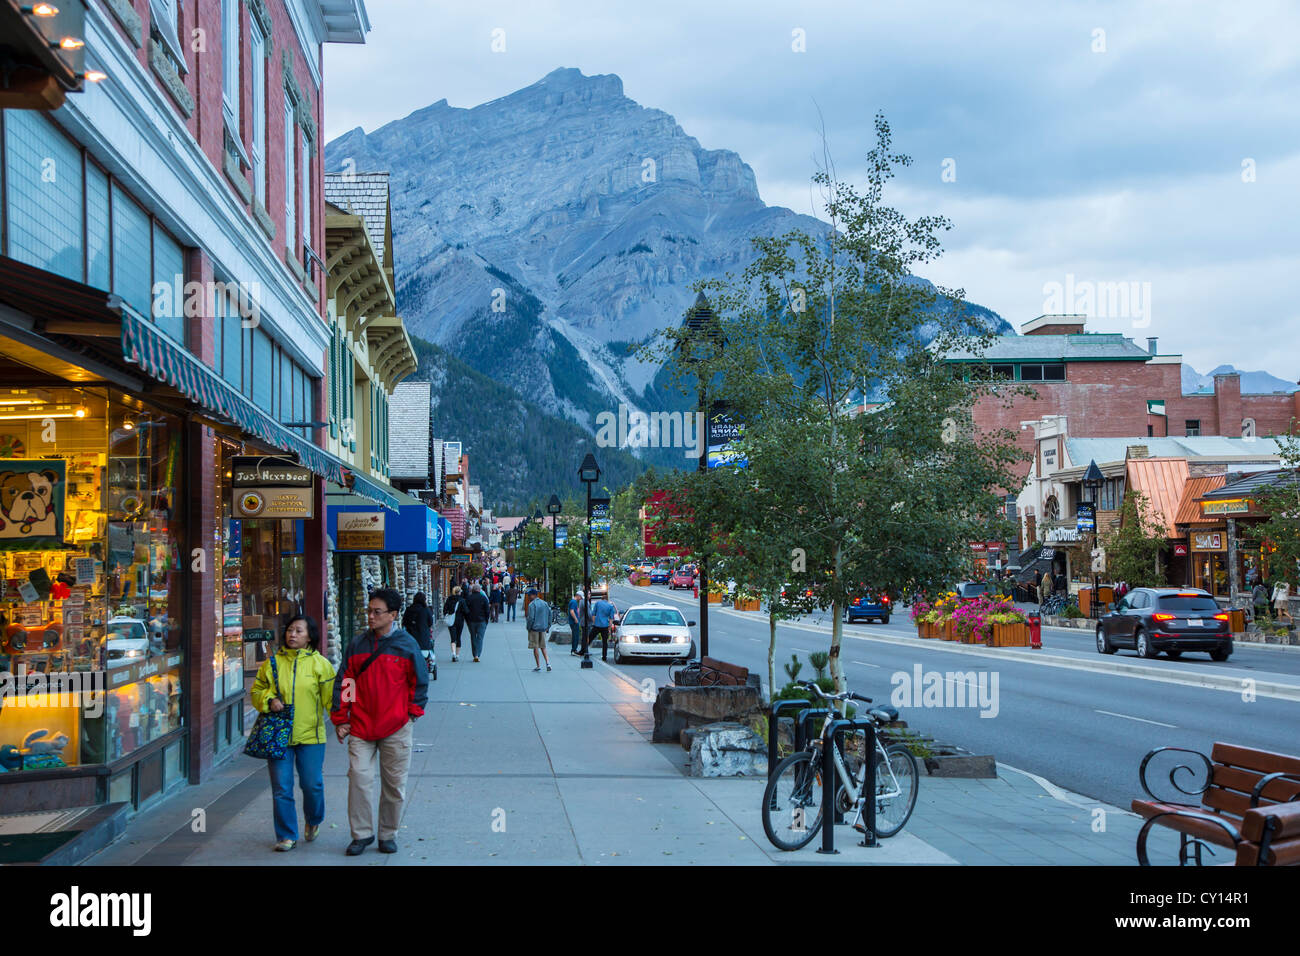 banff avenue in resort town of banff in the canadian rocky mountains